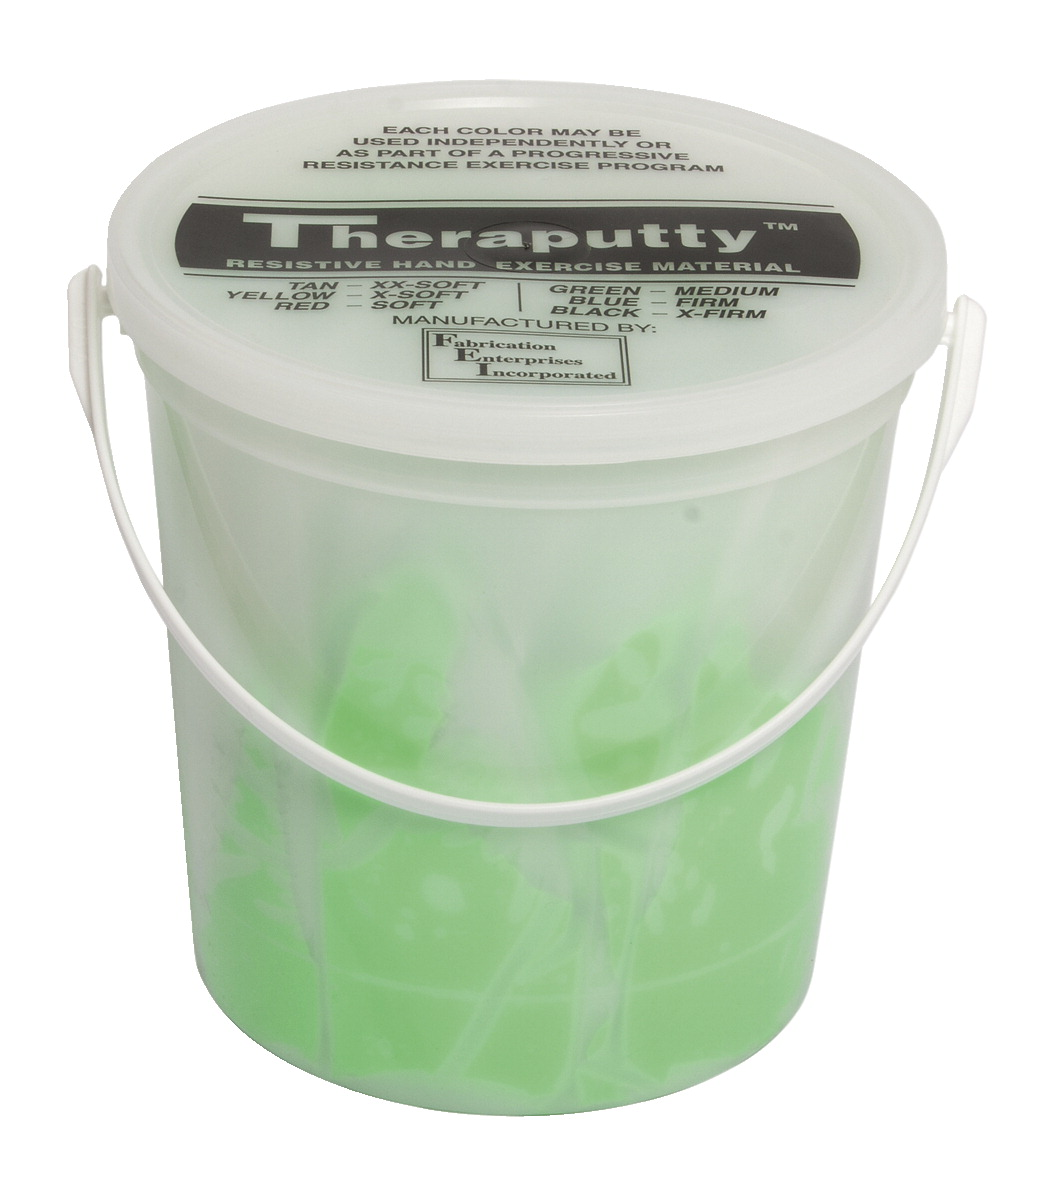 CanDo Scented Theraputty, Medium, 5 lb, Apple, Green